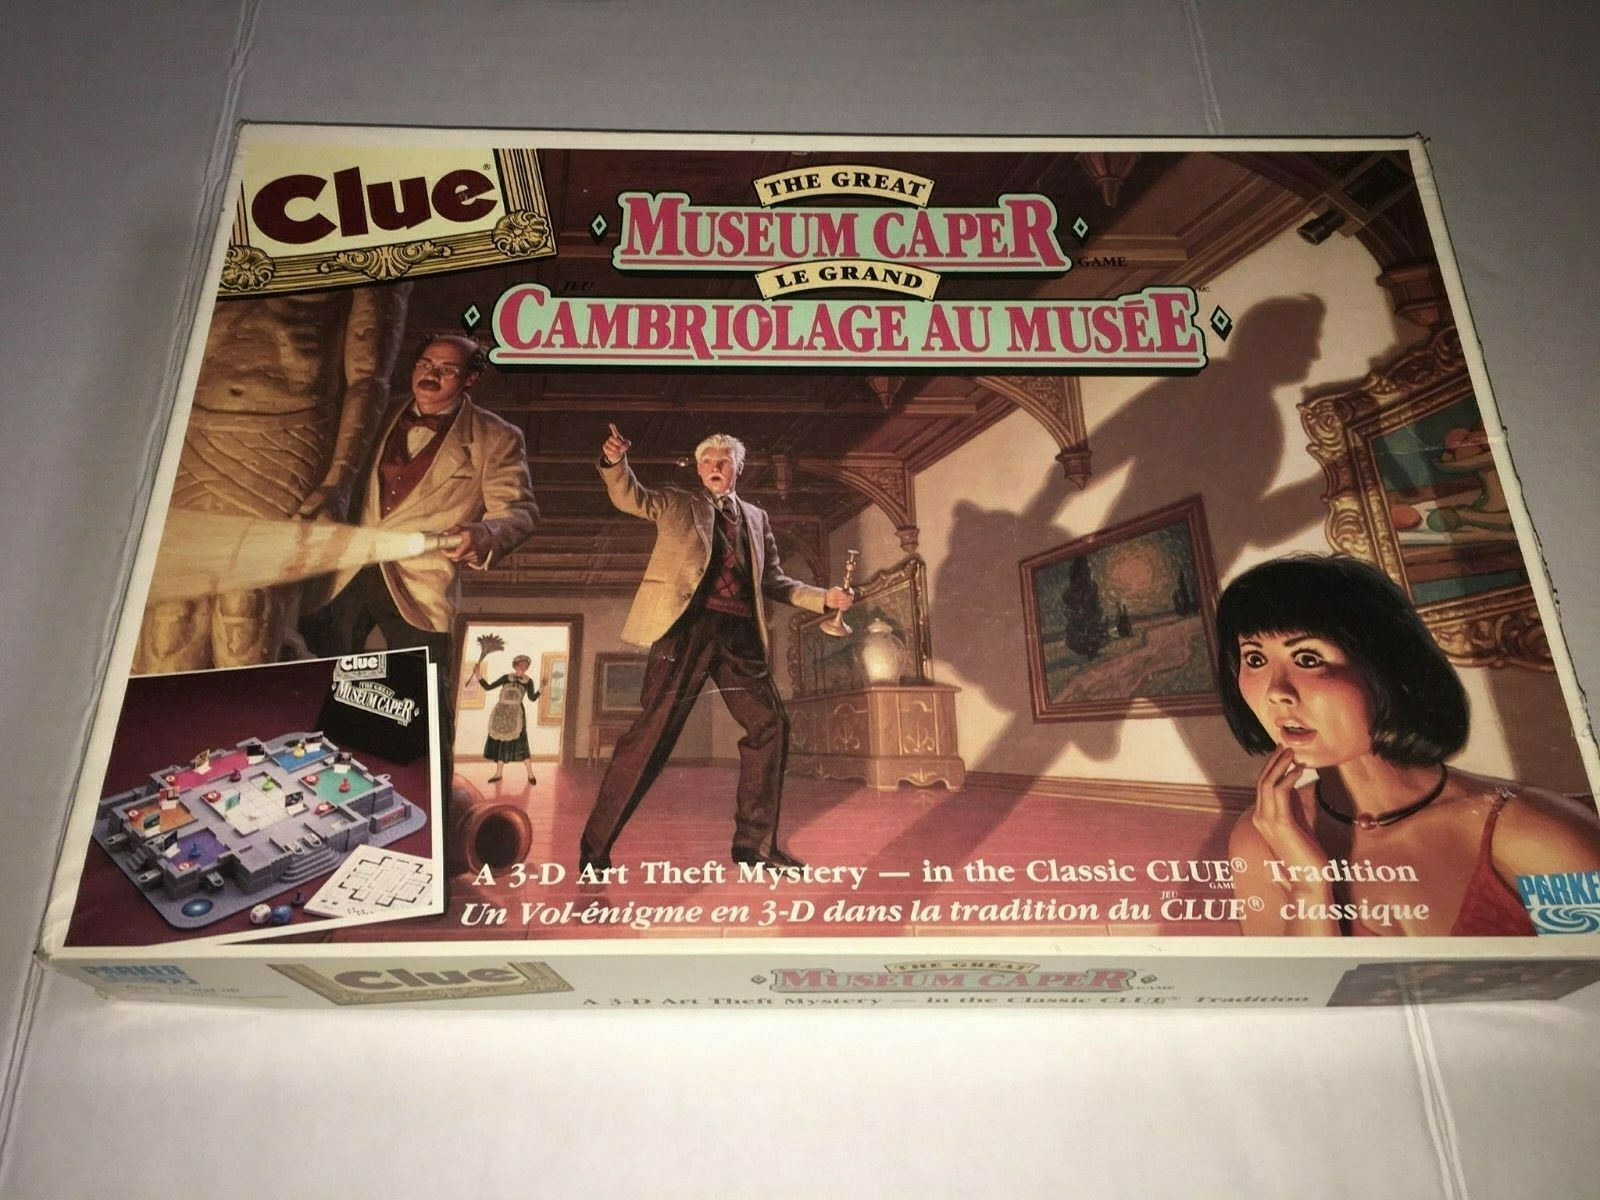 Vintage 1991 CLUE THE GREAT MUSEUM CAPER 3D Boardgame 100% COMPLETE EXCELLENT